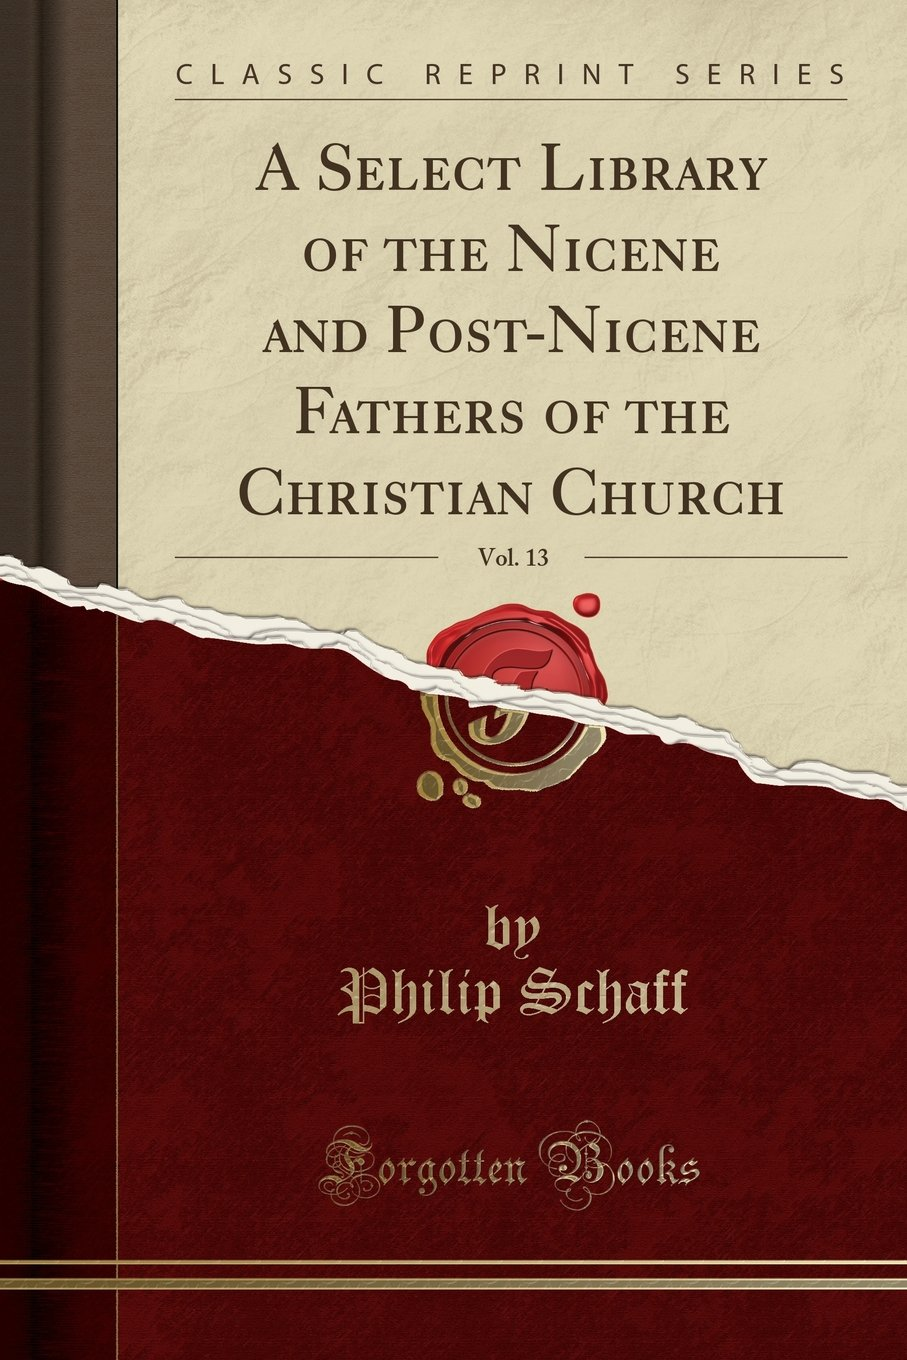 A Select Library of the Nicene and Post-Nicene Fathers of the Christian Church, Vol. 13 (Classic Reprint) pdf epub